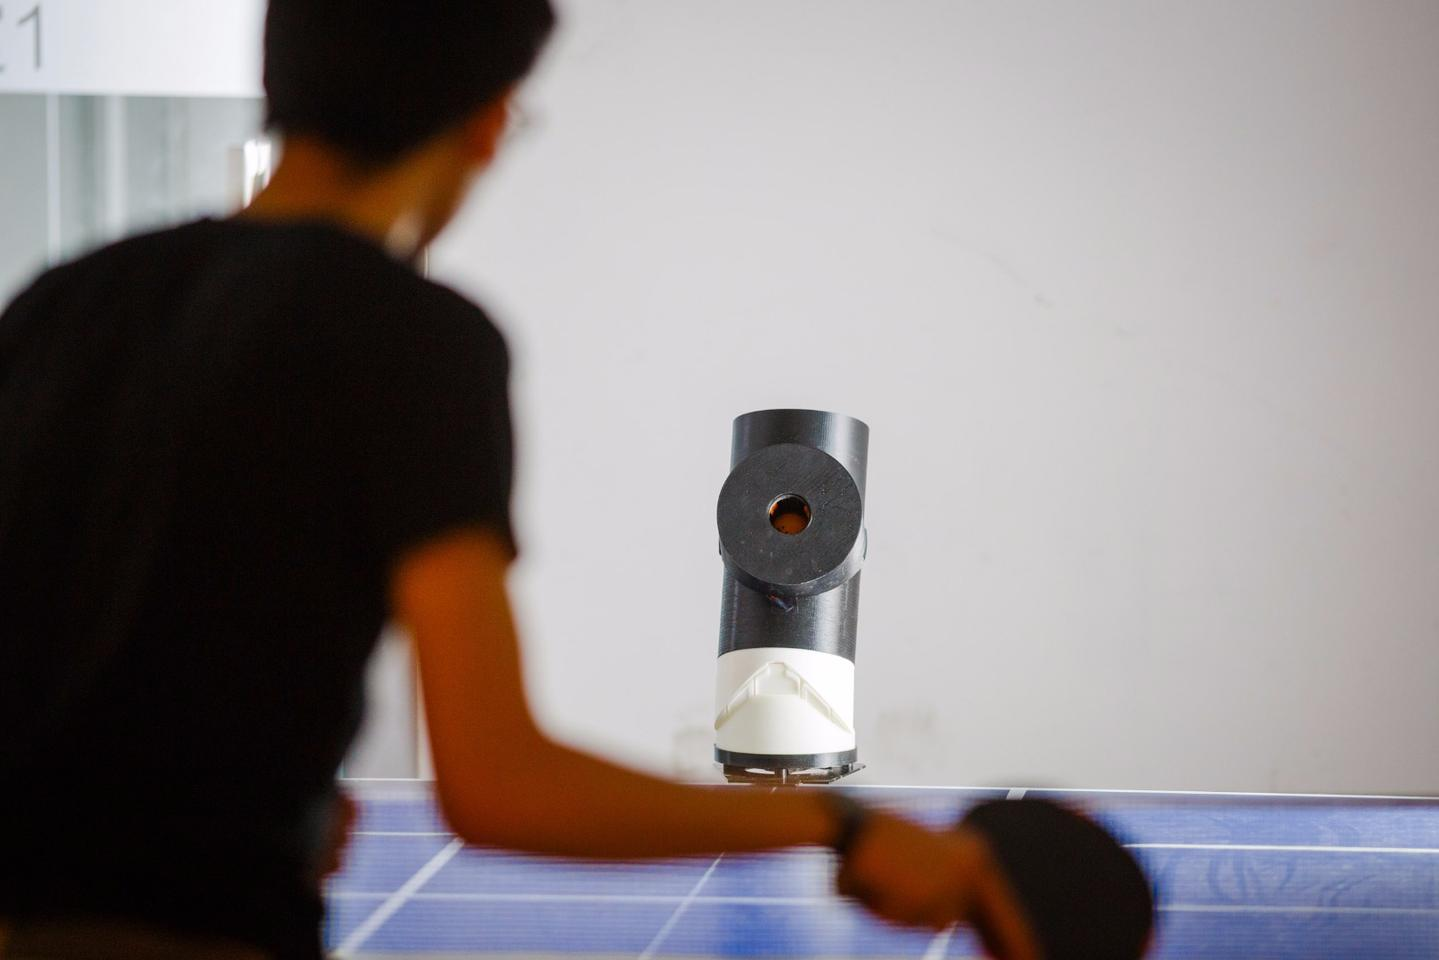 Measuring 32 cm tall and 16 cm in diameter (12 x 6 in) at only 1.2 kg (2.6 lb), Trainerbot is portable enough to be carried by hand or in backpacks